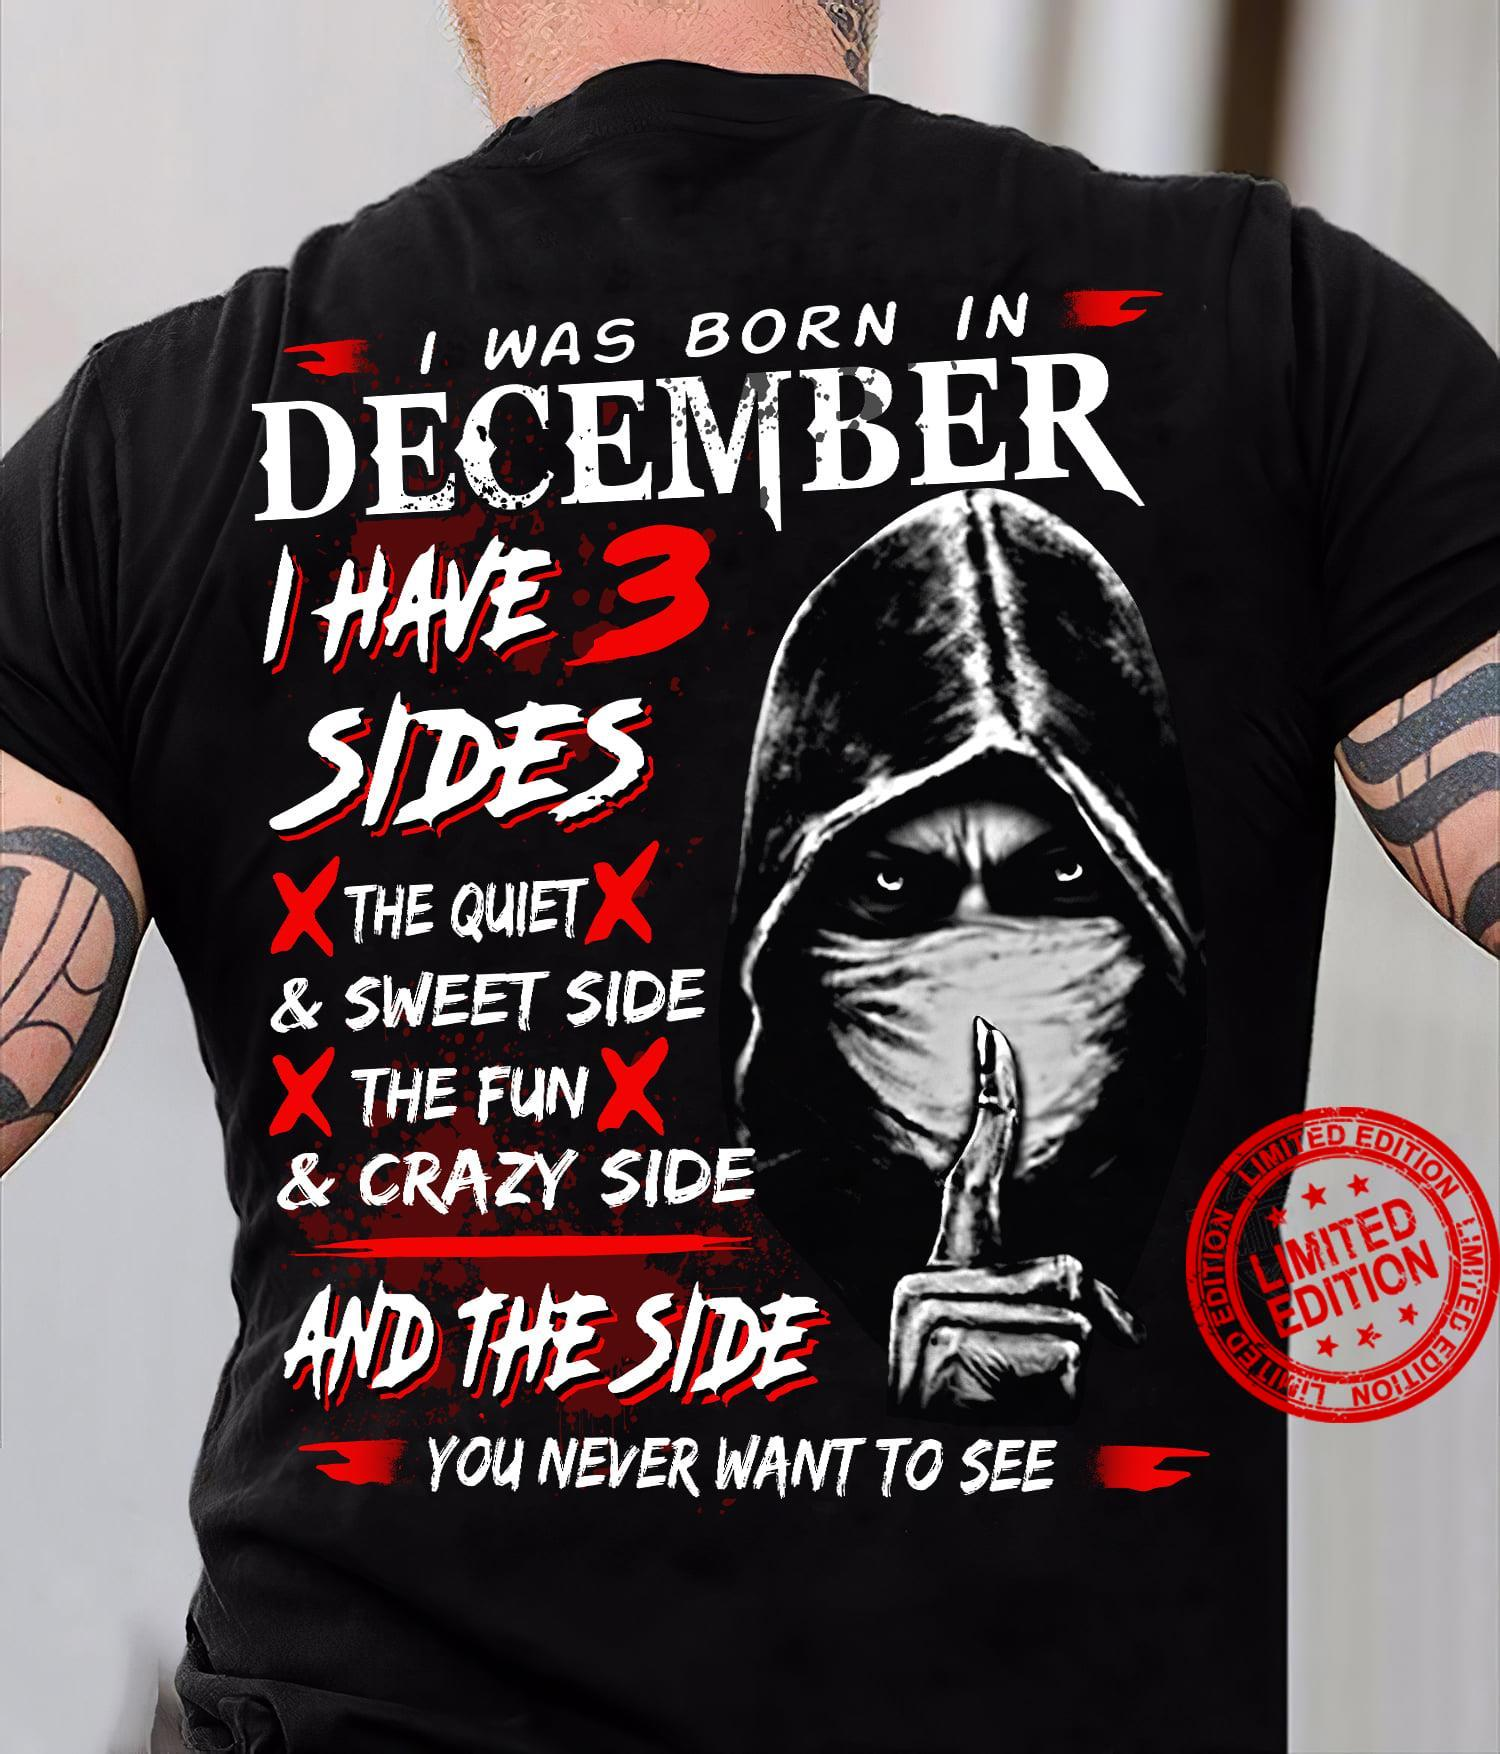 I Was Born In December I Have 3 Sides The Quiet & Sweet Side The Fun & Crazy Side And The Side You Never Want To See Shirt